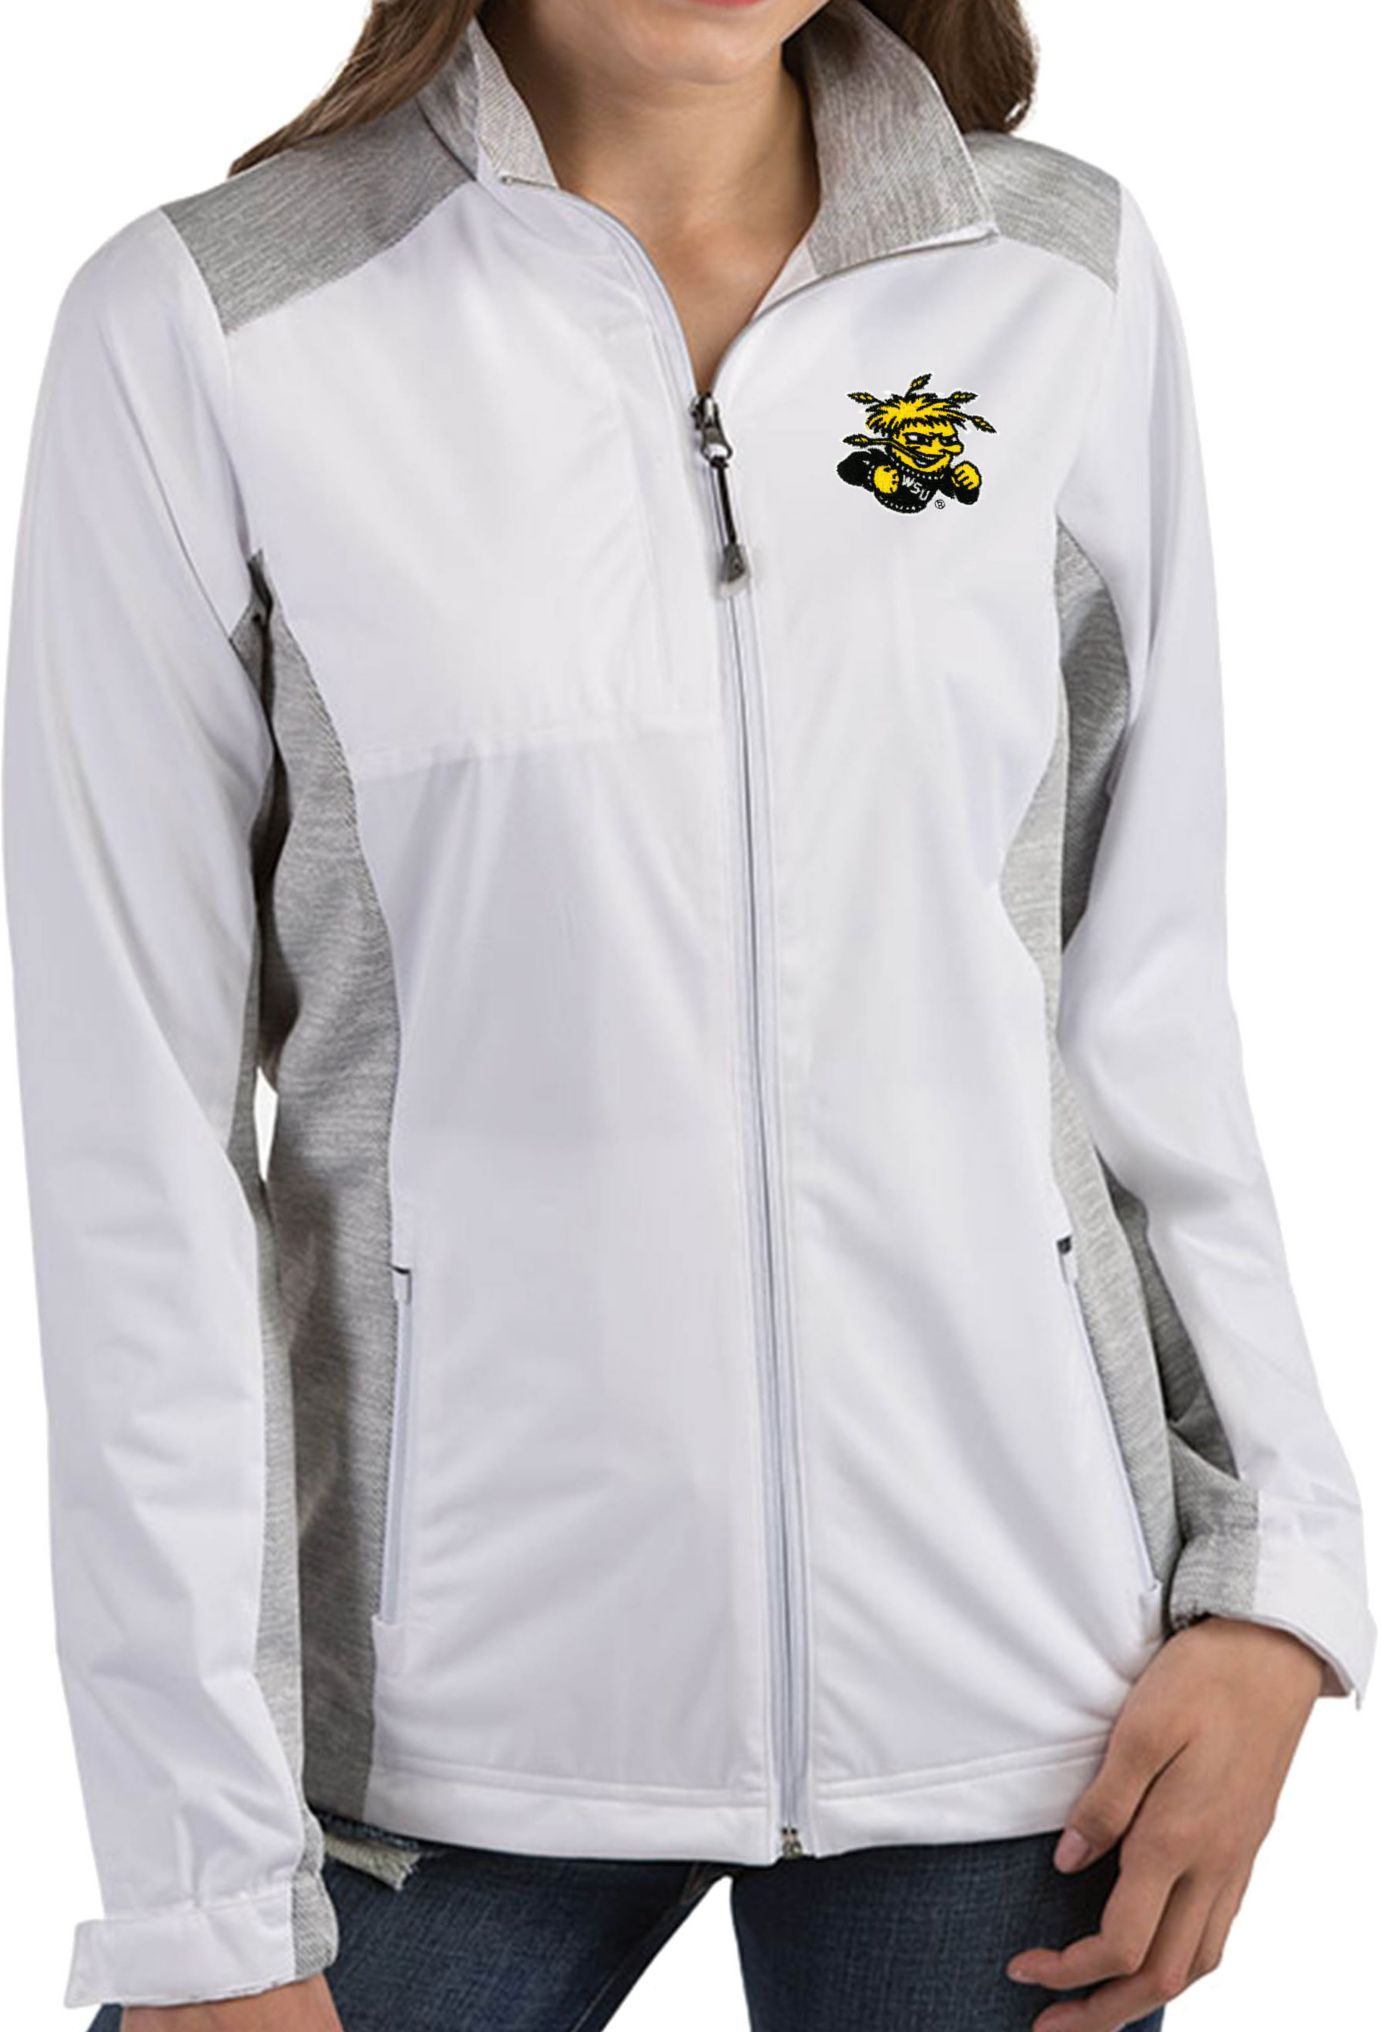 Antigua Women's Wichita State Shockers Revolve Full-Zip White Jacket